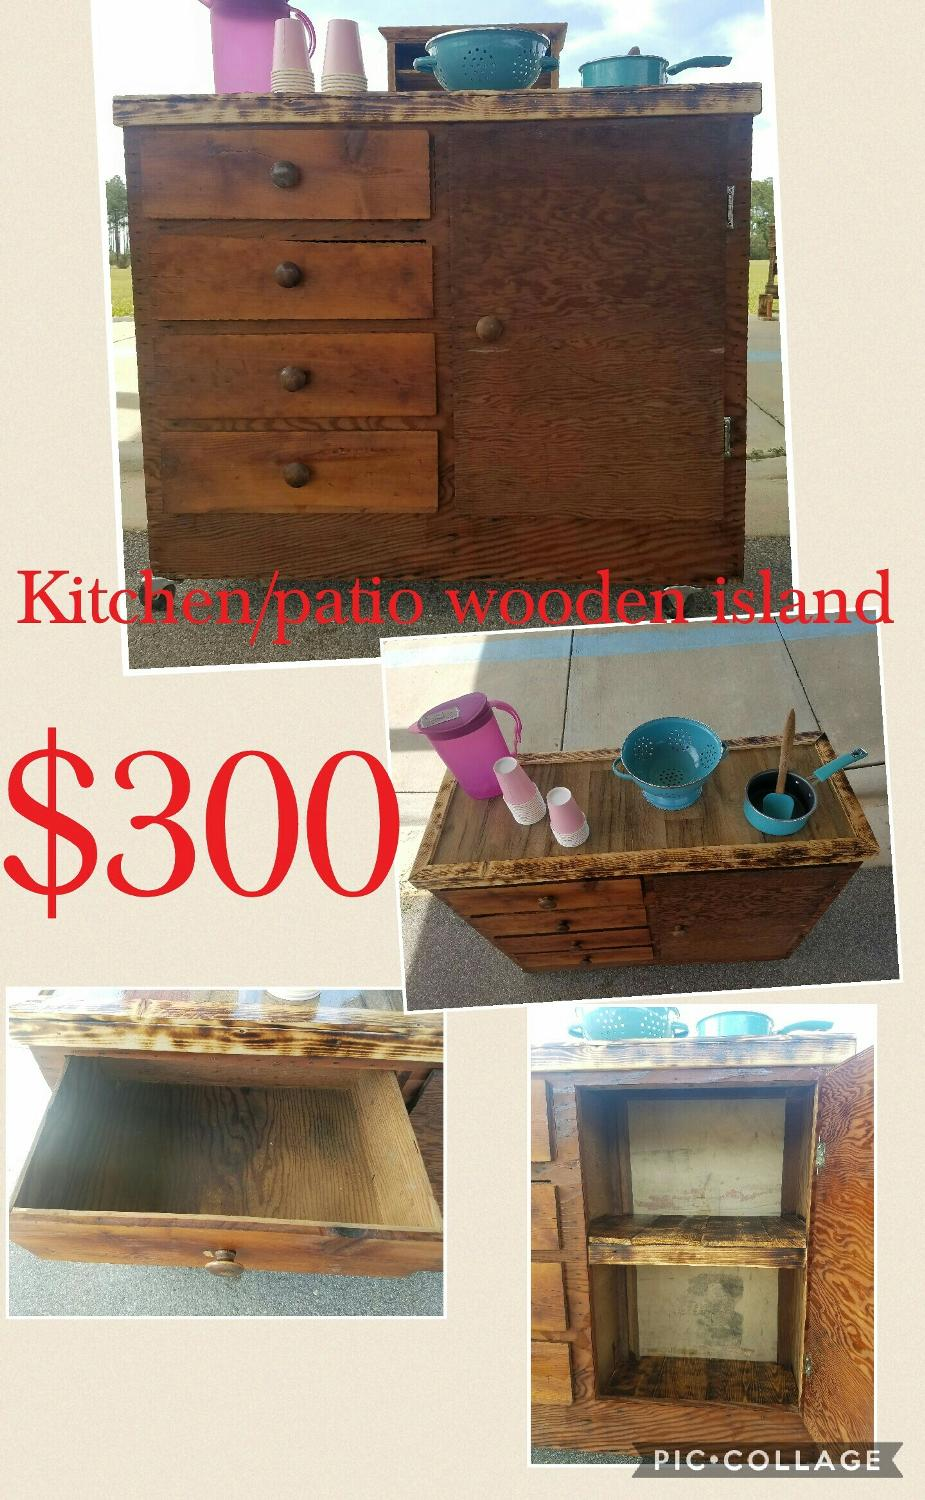 Best Wooden Island For Kitchen Or Patio For Sale In Mobile Alabama For 2017